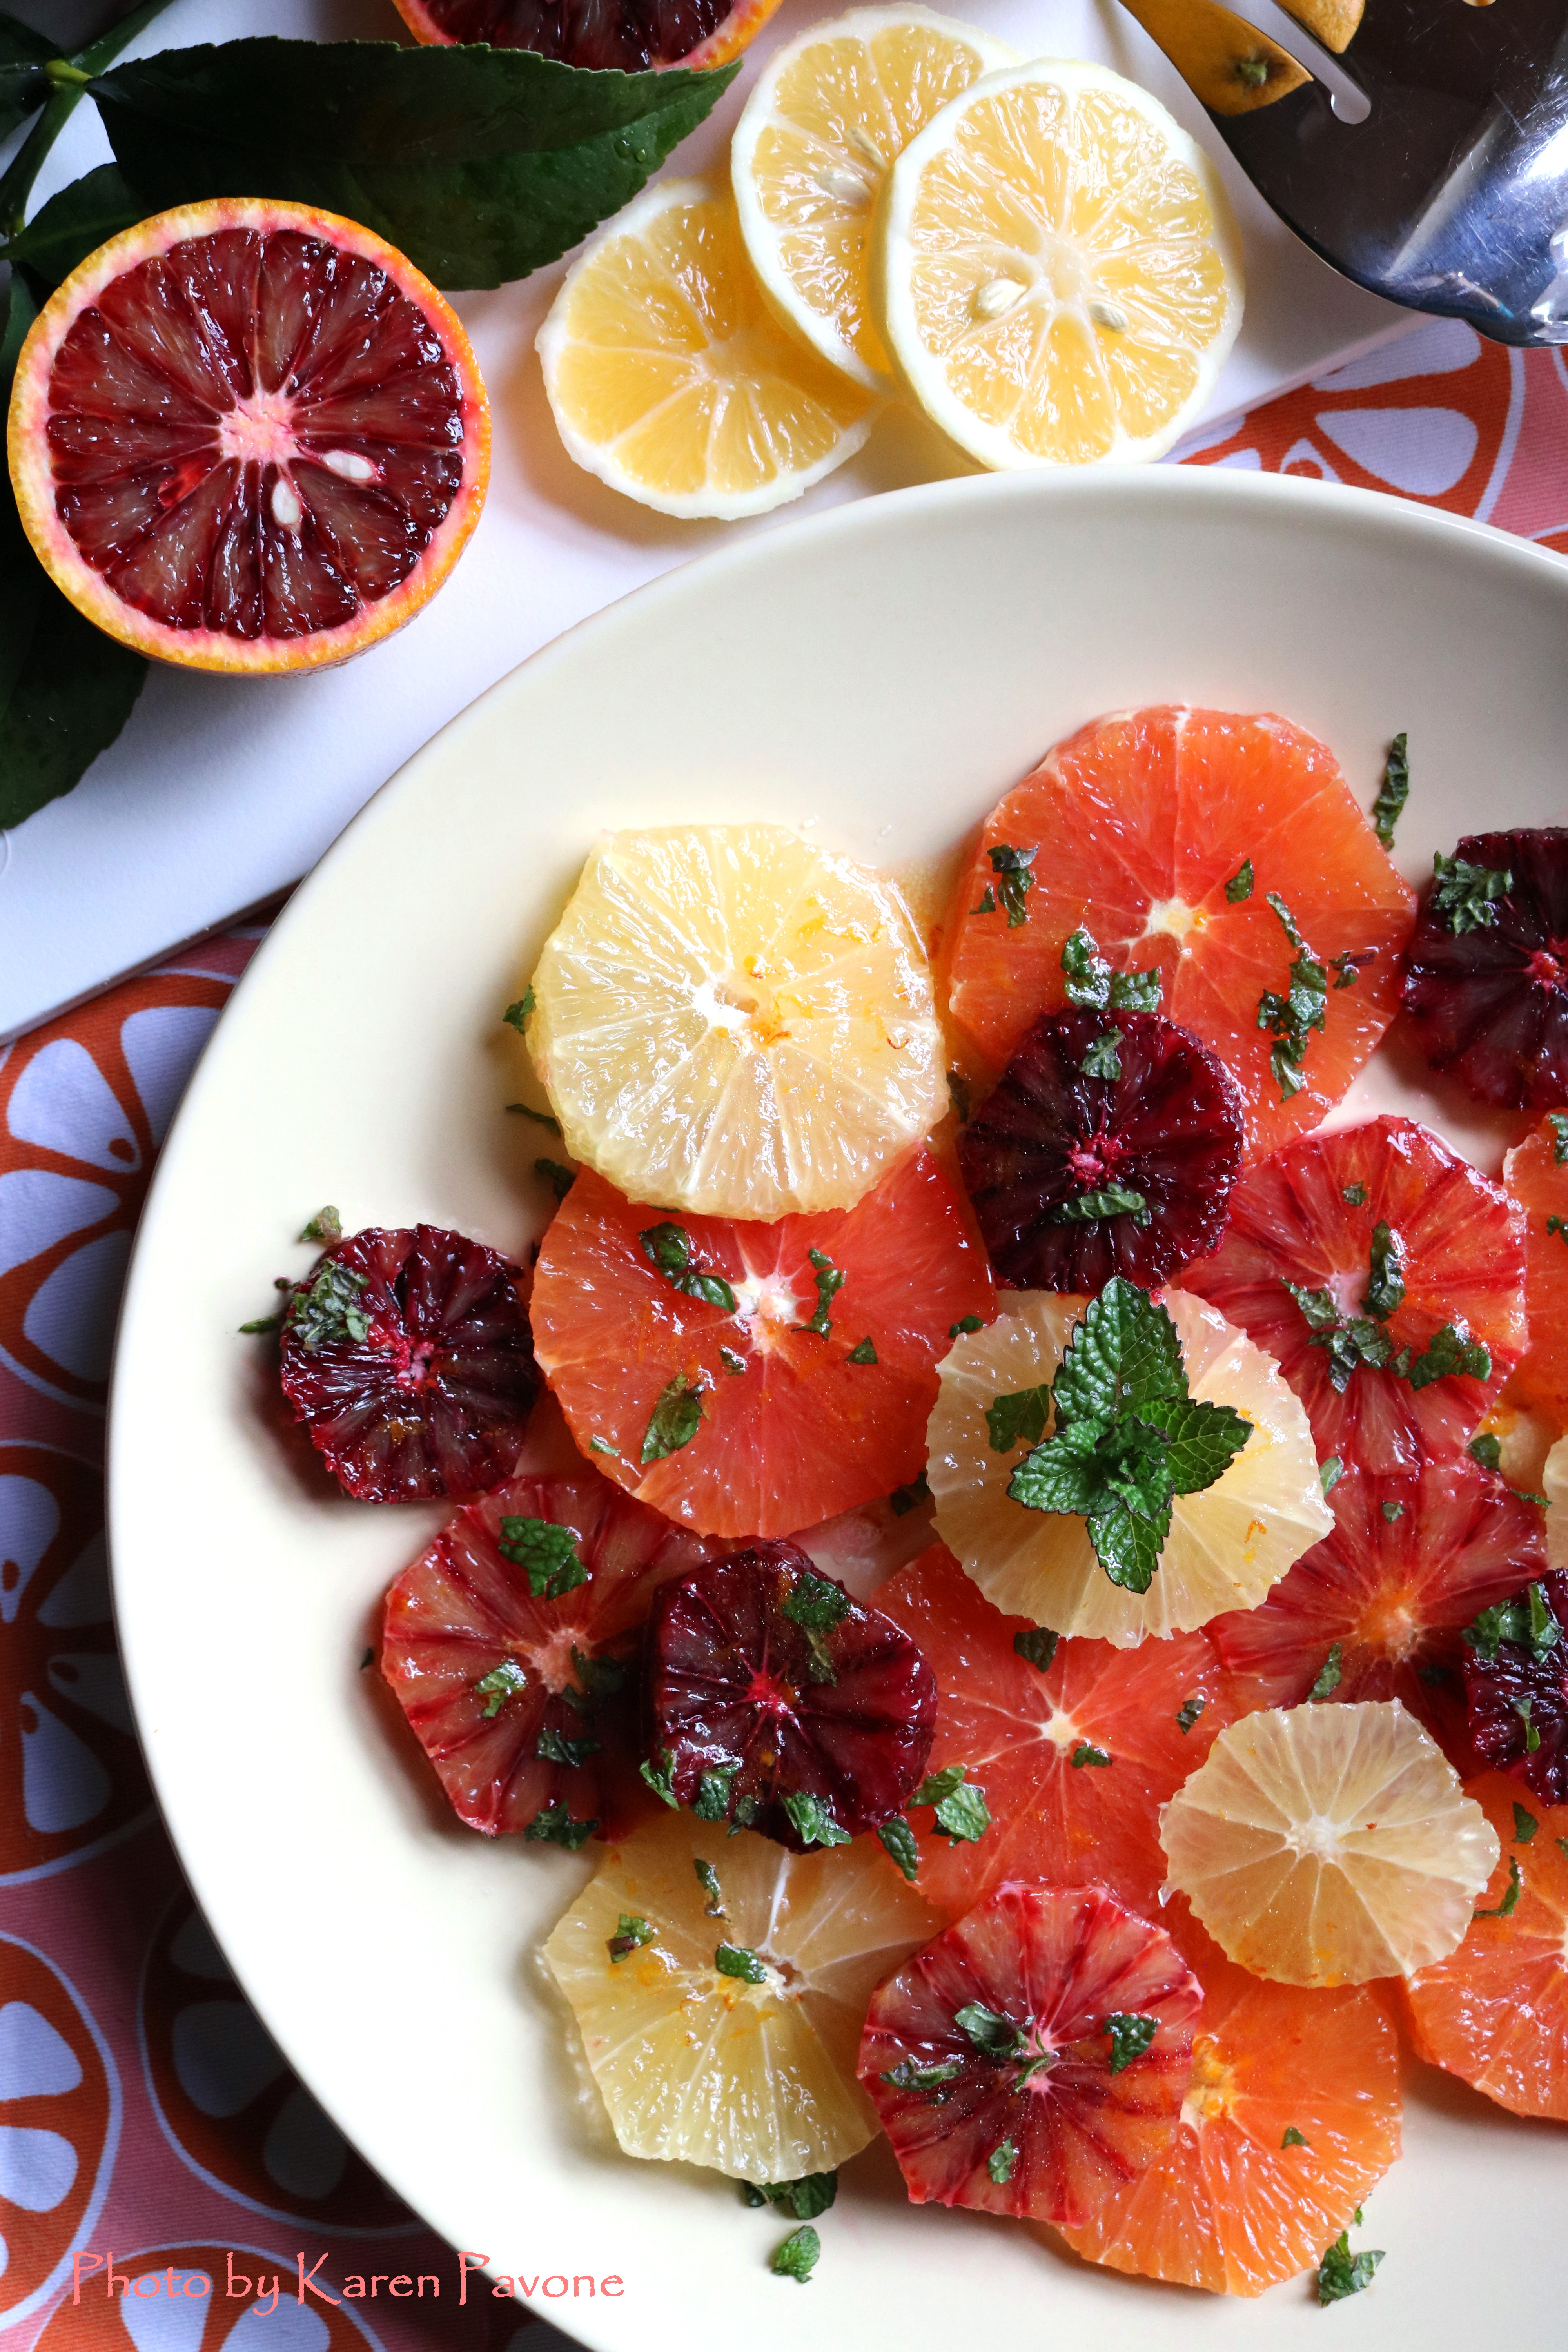 images Winter Fruits: 9 Citrus Recipes to Enjoy When Its Cold